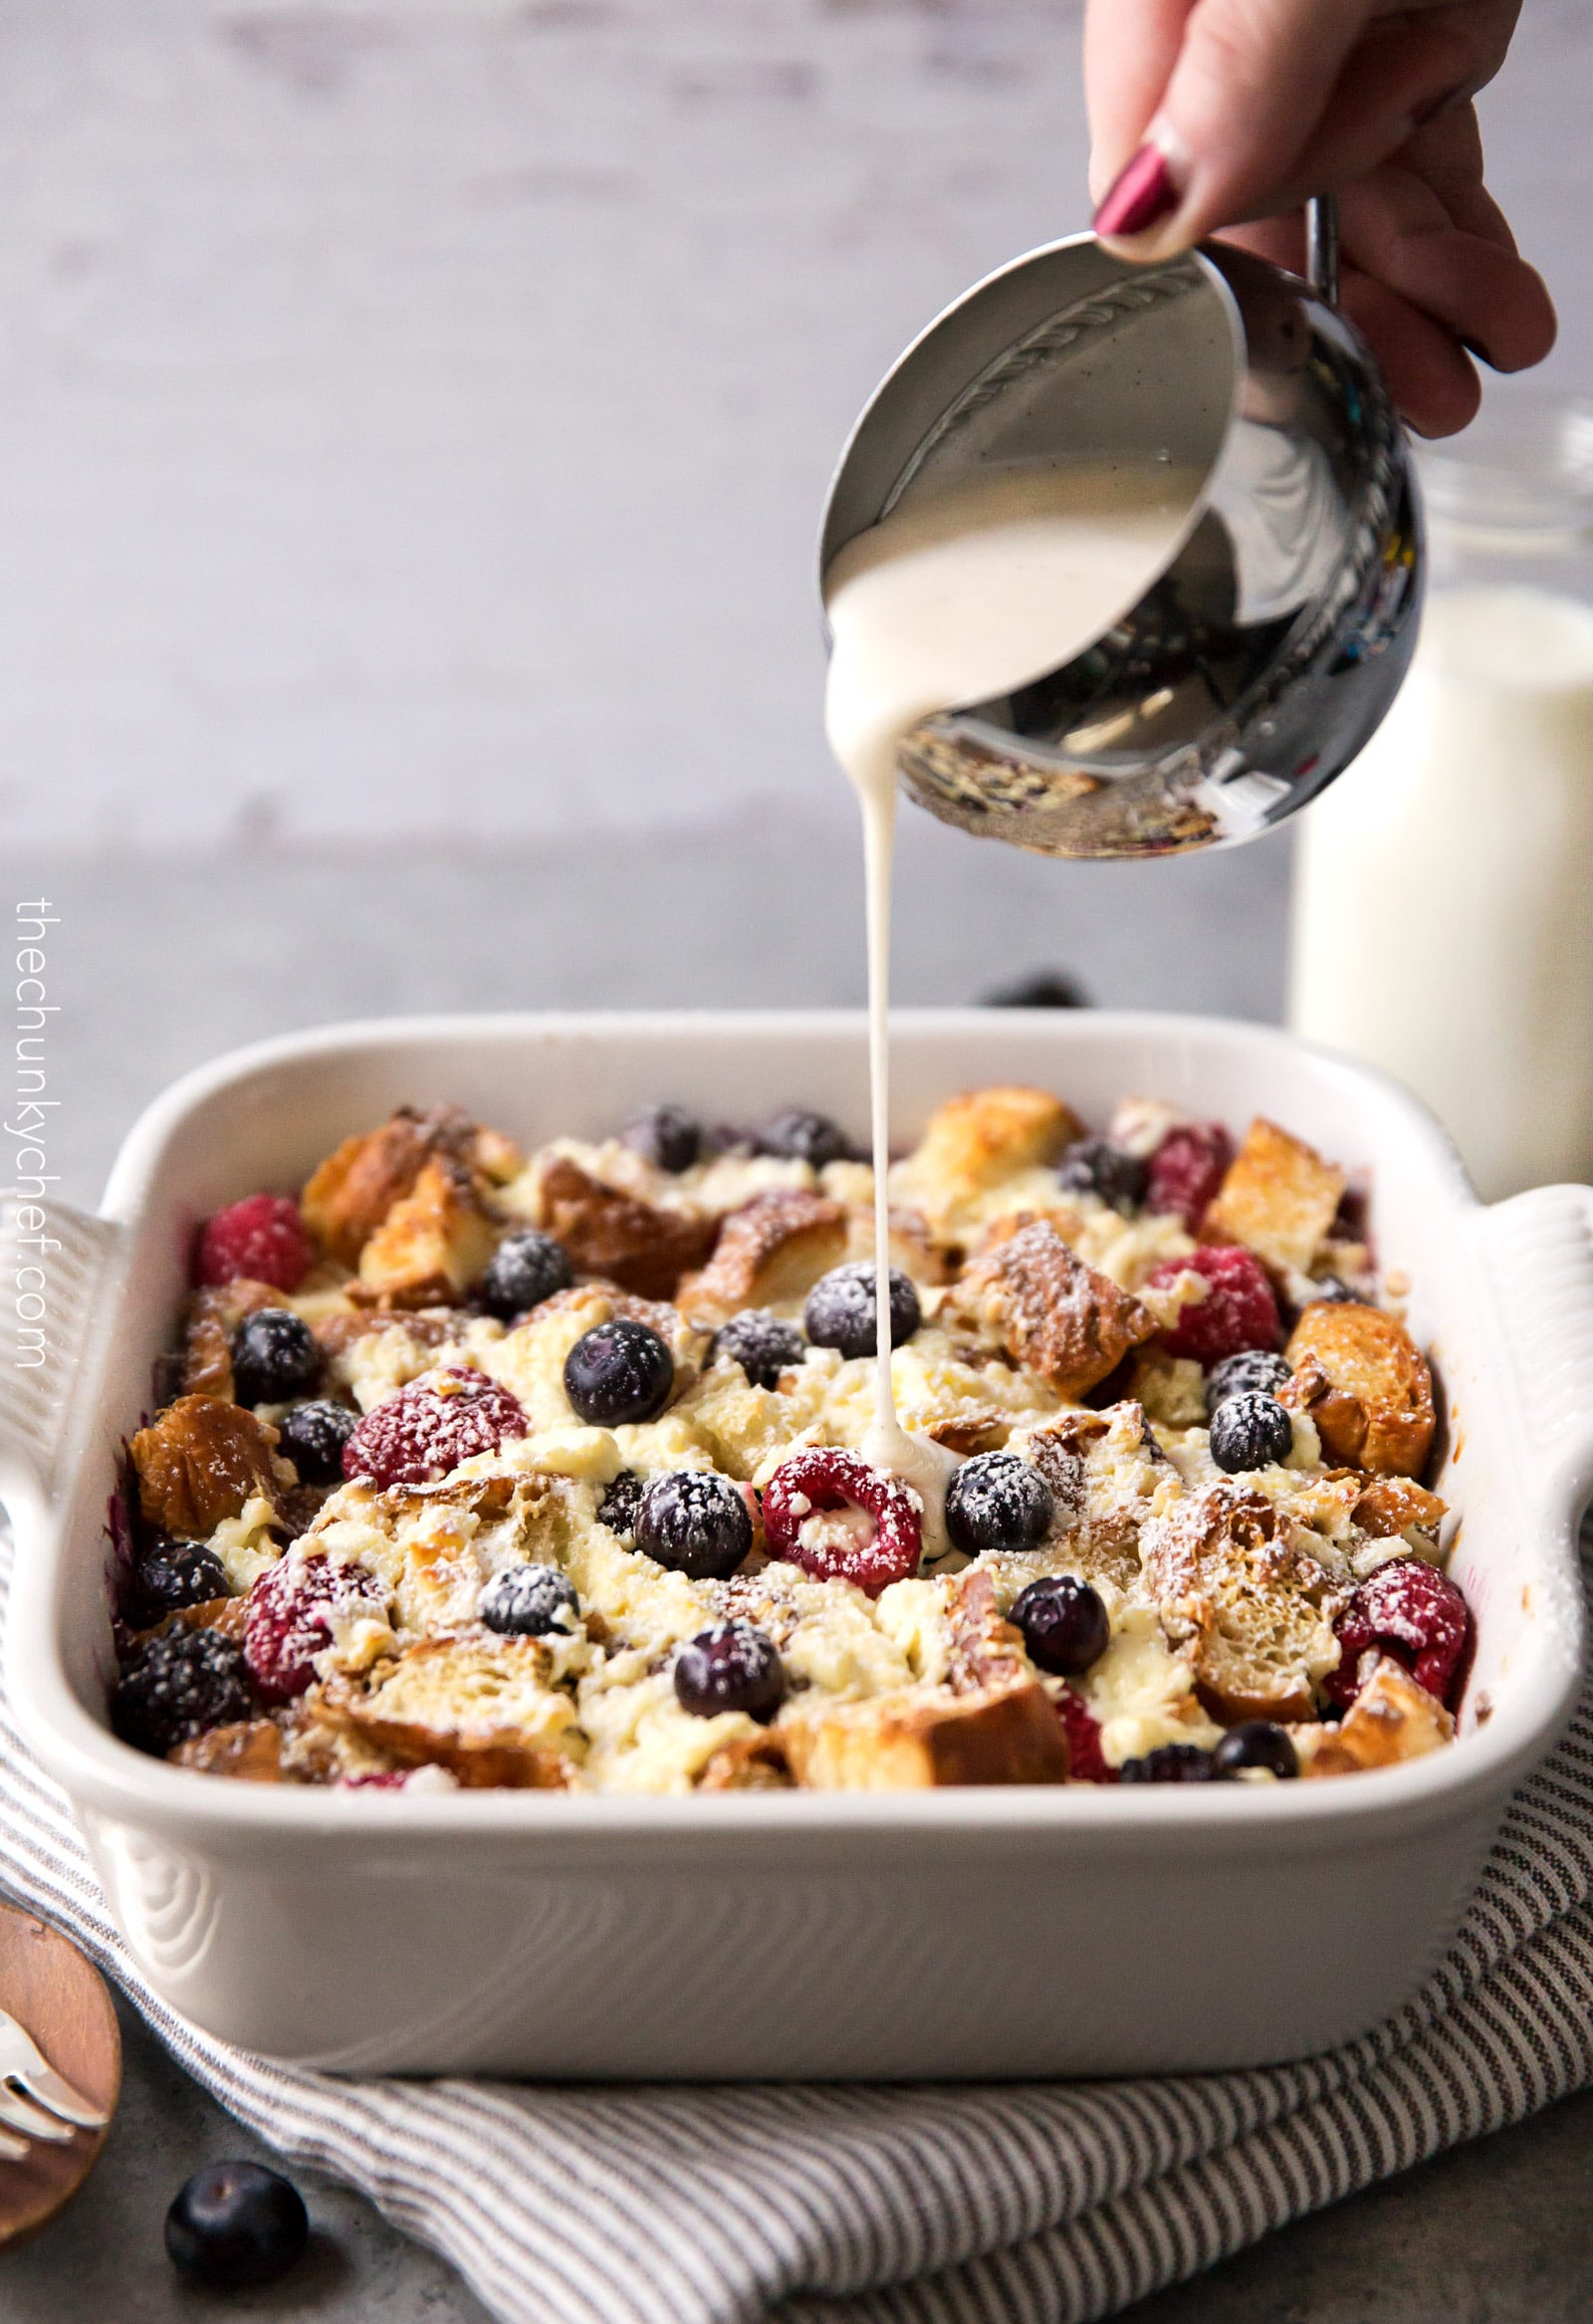 Mixed Berry Overnight Croissant Breakfast Bake | Whip this croissant breakfast bake up the night before, let it sit overnight, then bake it to crispy yet creamy perfection. Drizzle it with vanilla bean glaze and prepare to fall in love! | http://thechunkychef.com